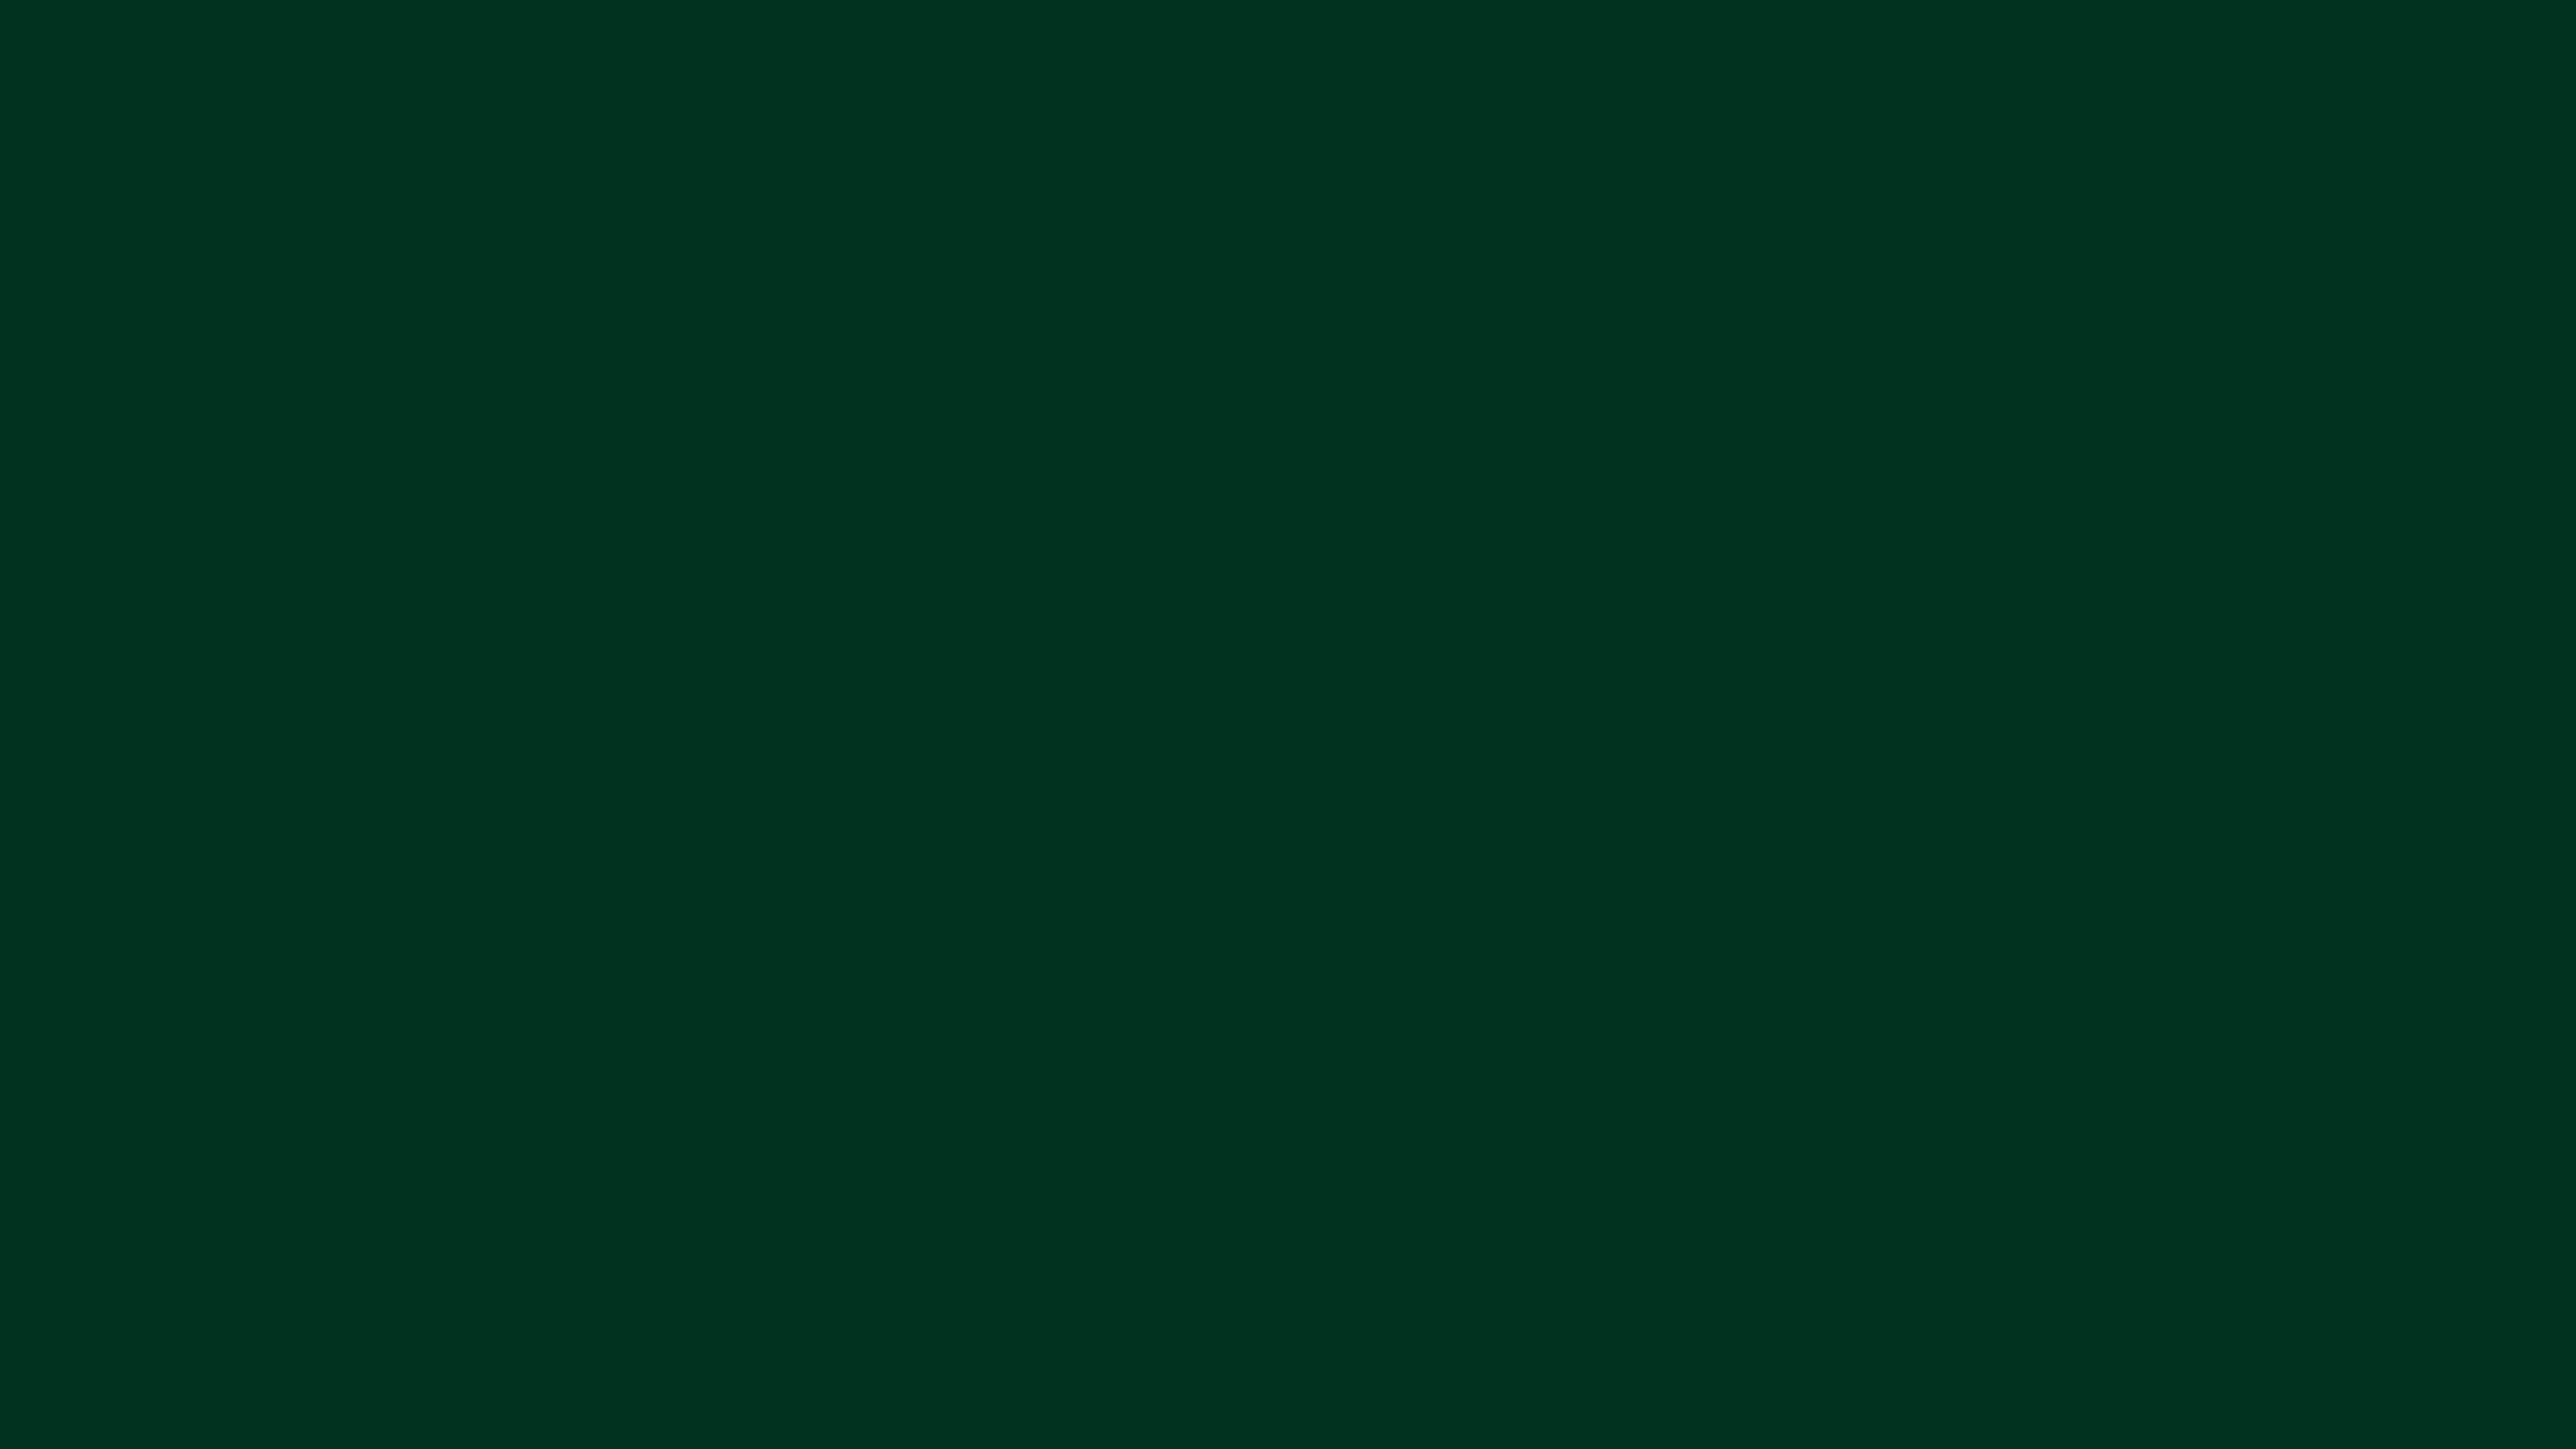 4096x2304 Dark Green Solid Color Background